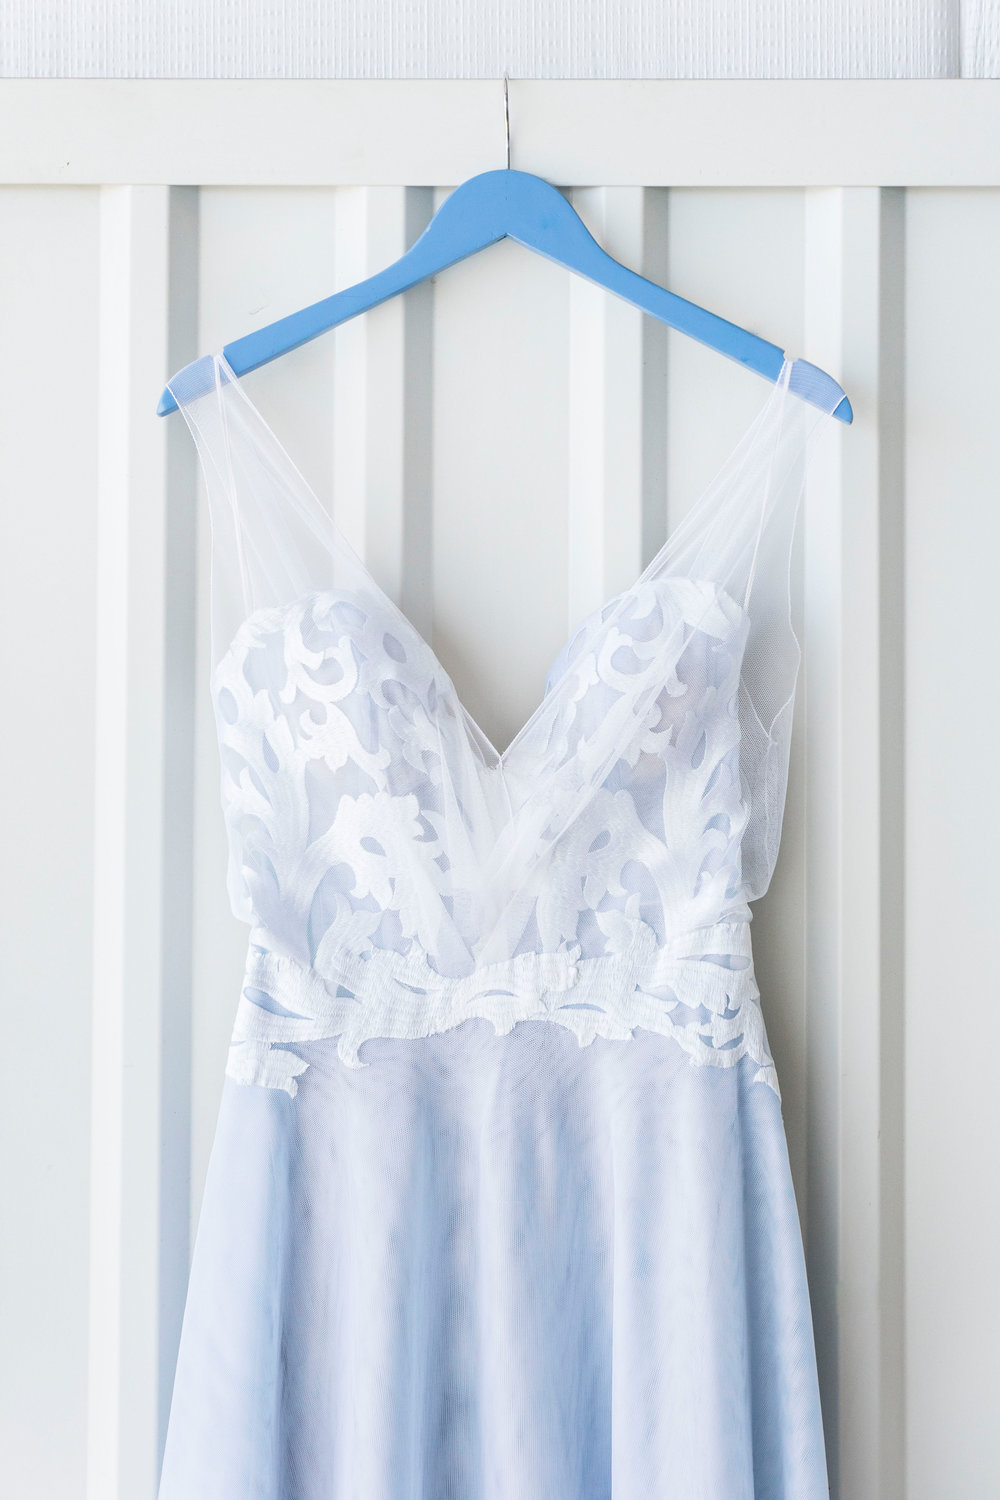 blue wedding dress.jpg